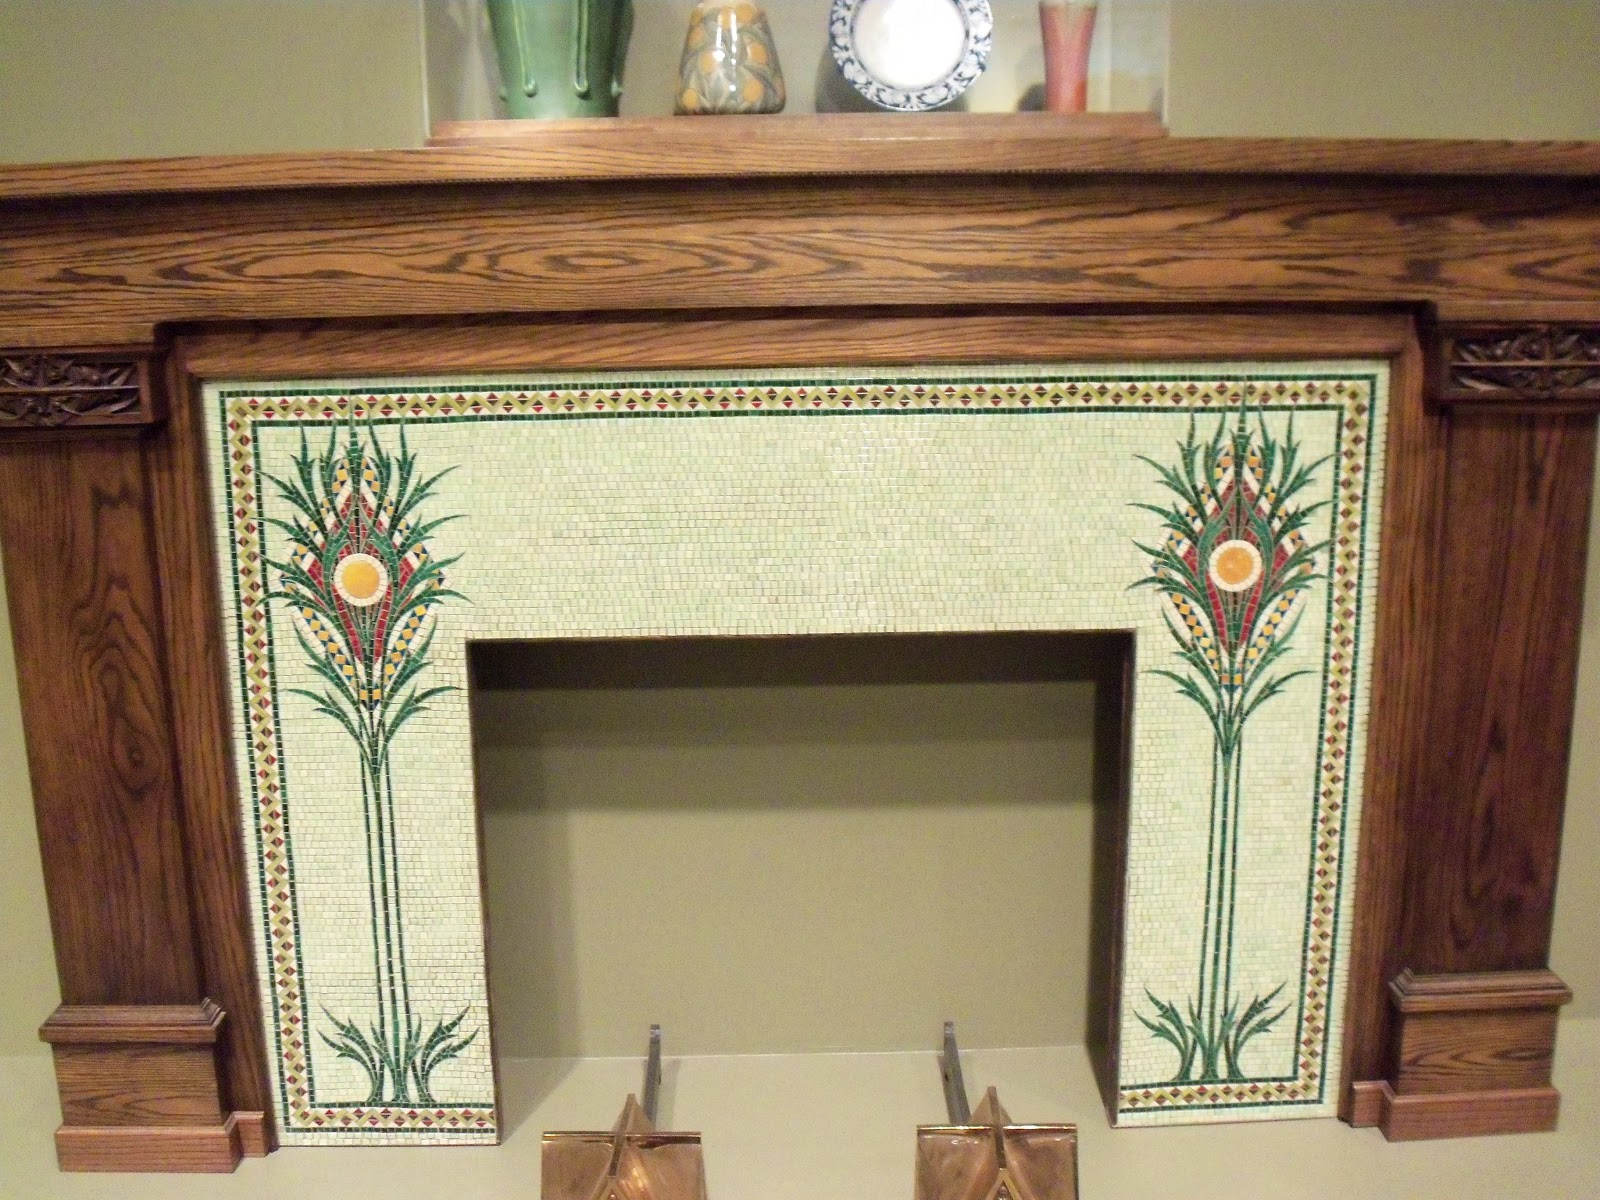 Frank Lloyd Wright Fireplace Screen The Sassy Countess Historic Estates And Grand Lifestyles